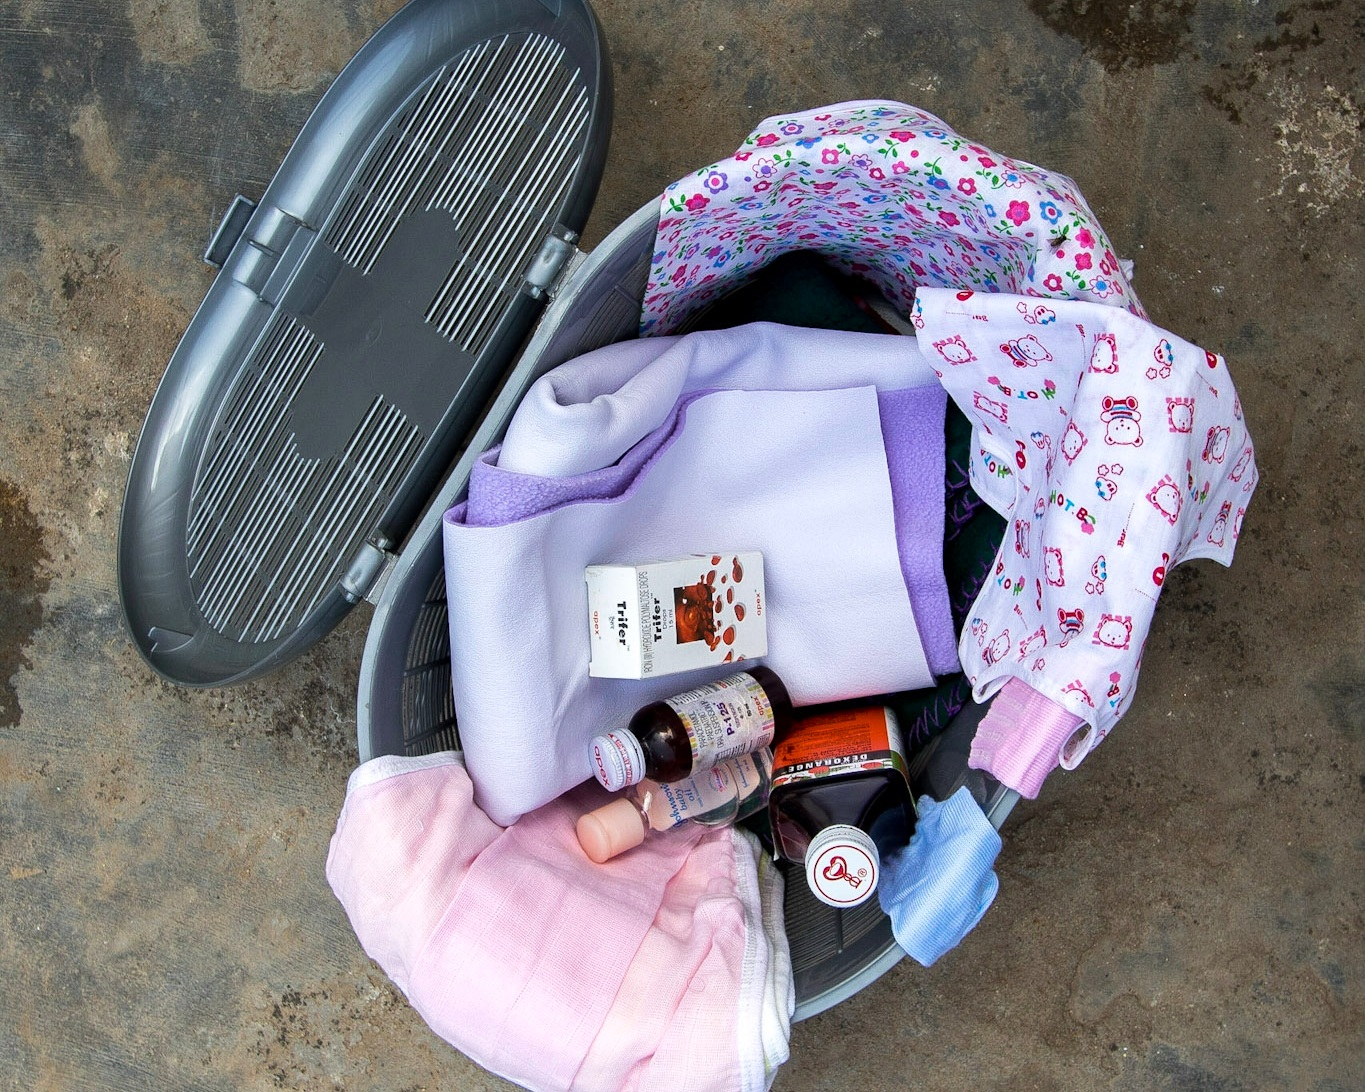 Newborn mother and Baby kit, via Salt of the Earth's ethical gift scheme